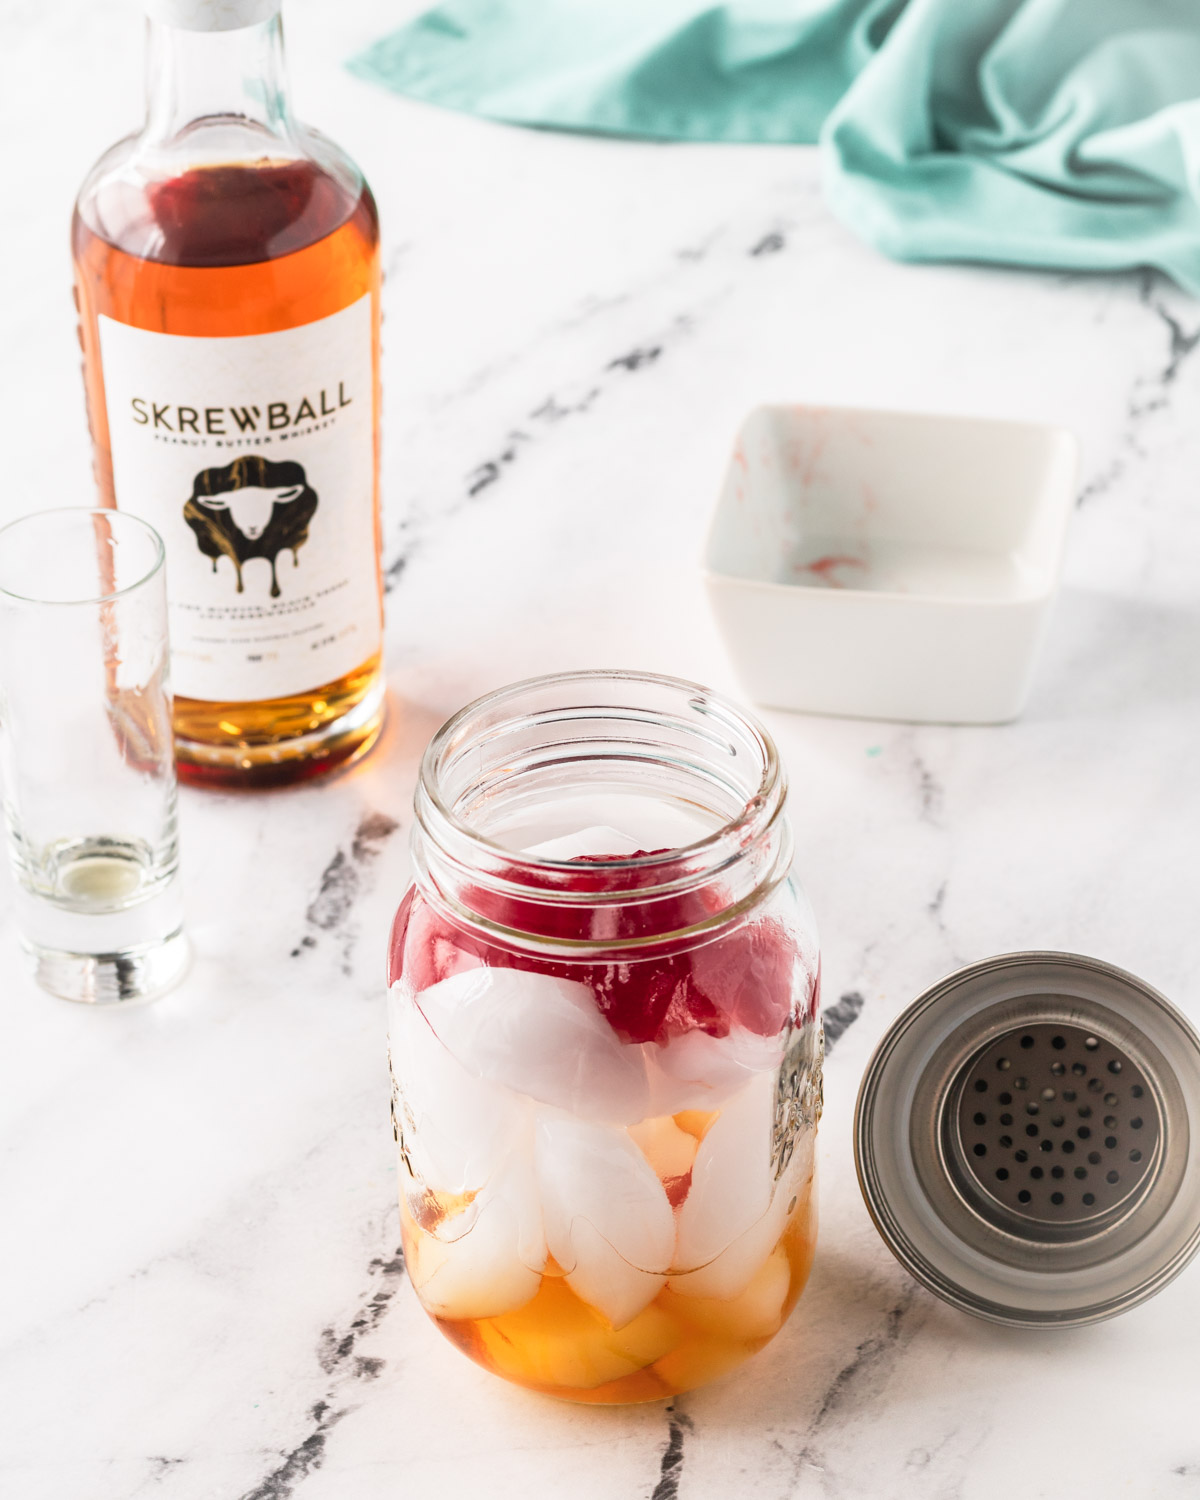 Strawberry jelly and peanut butter whiskey have been poured over the ice in the mason jar shaker.